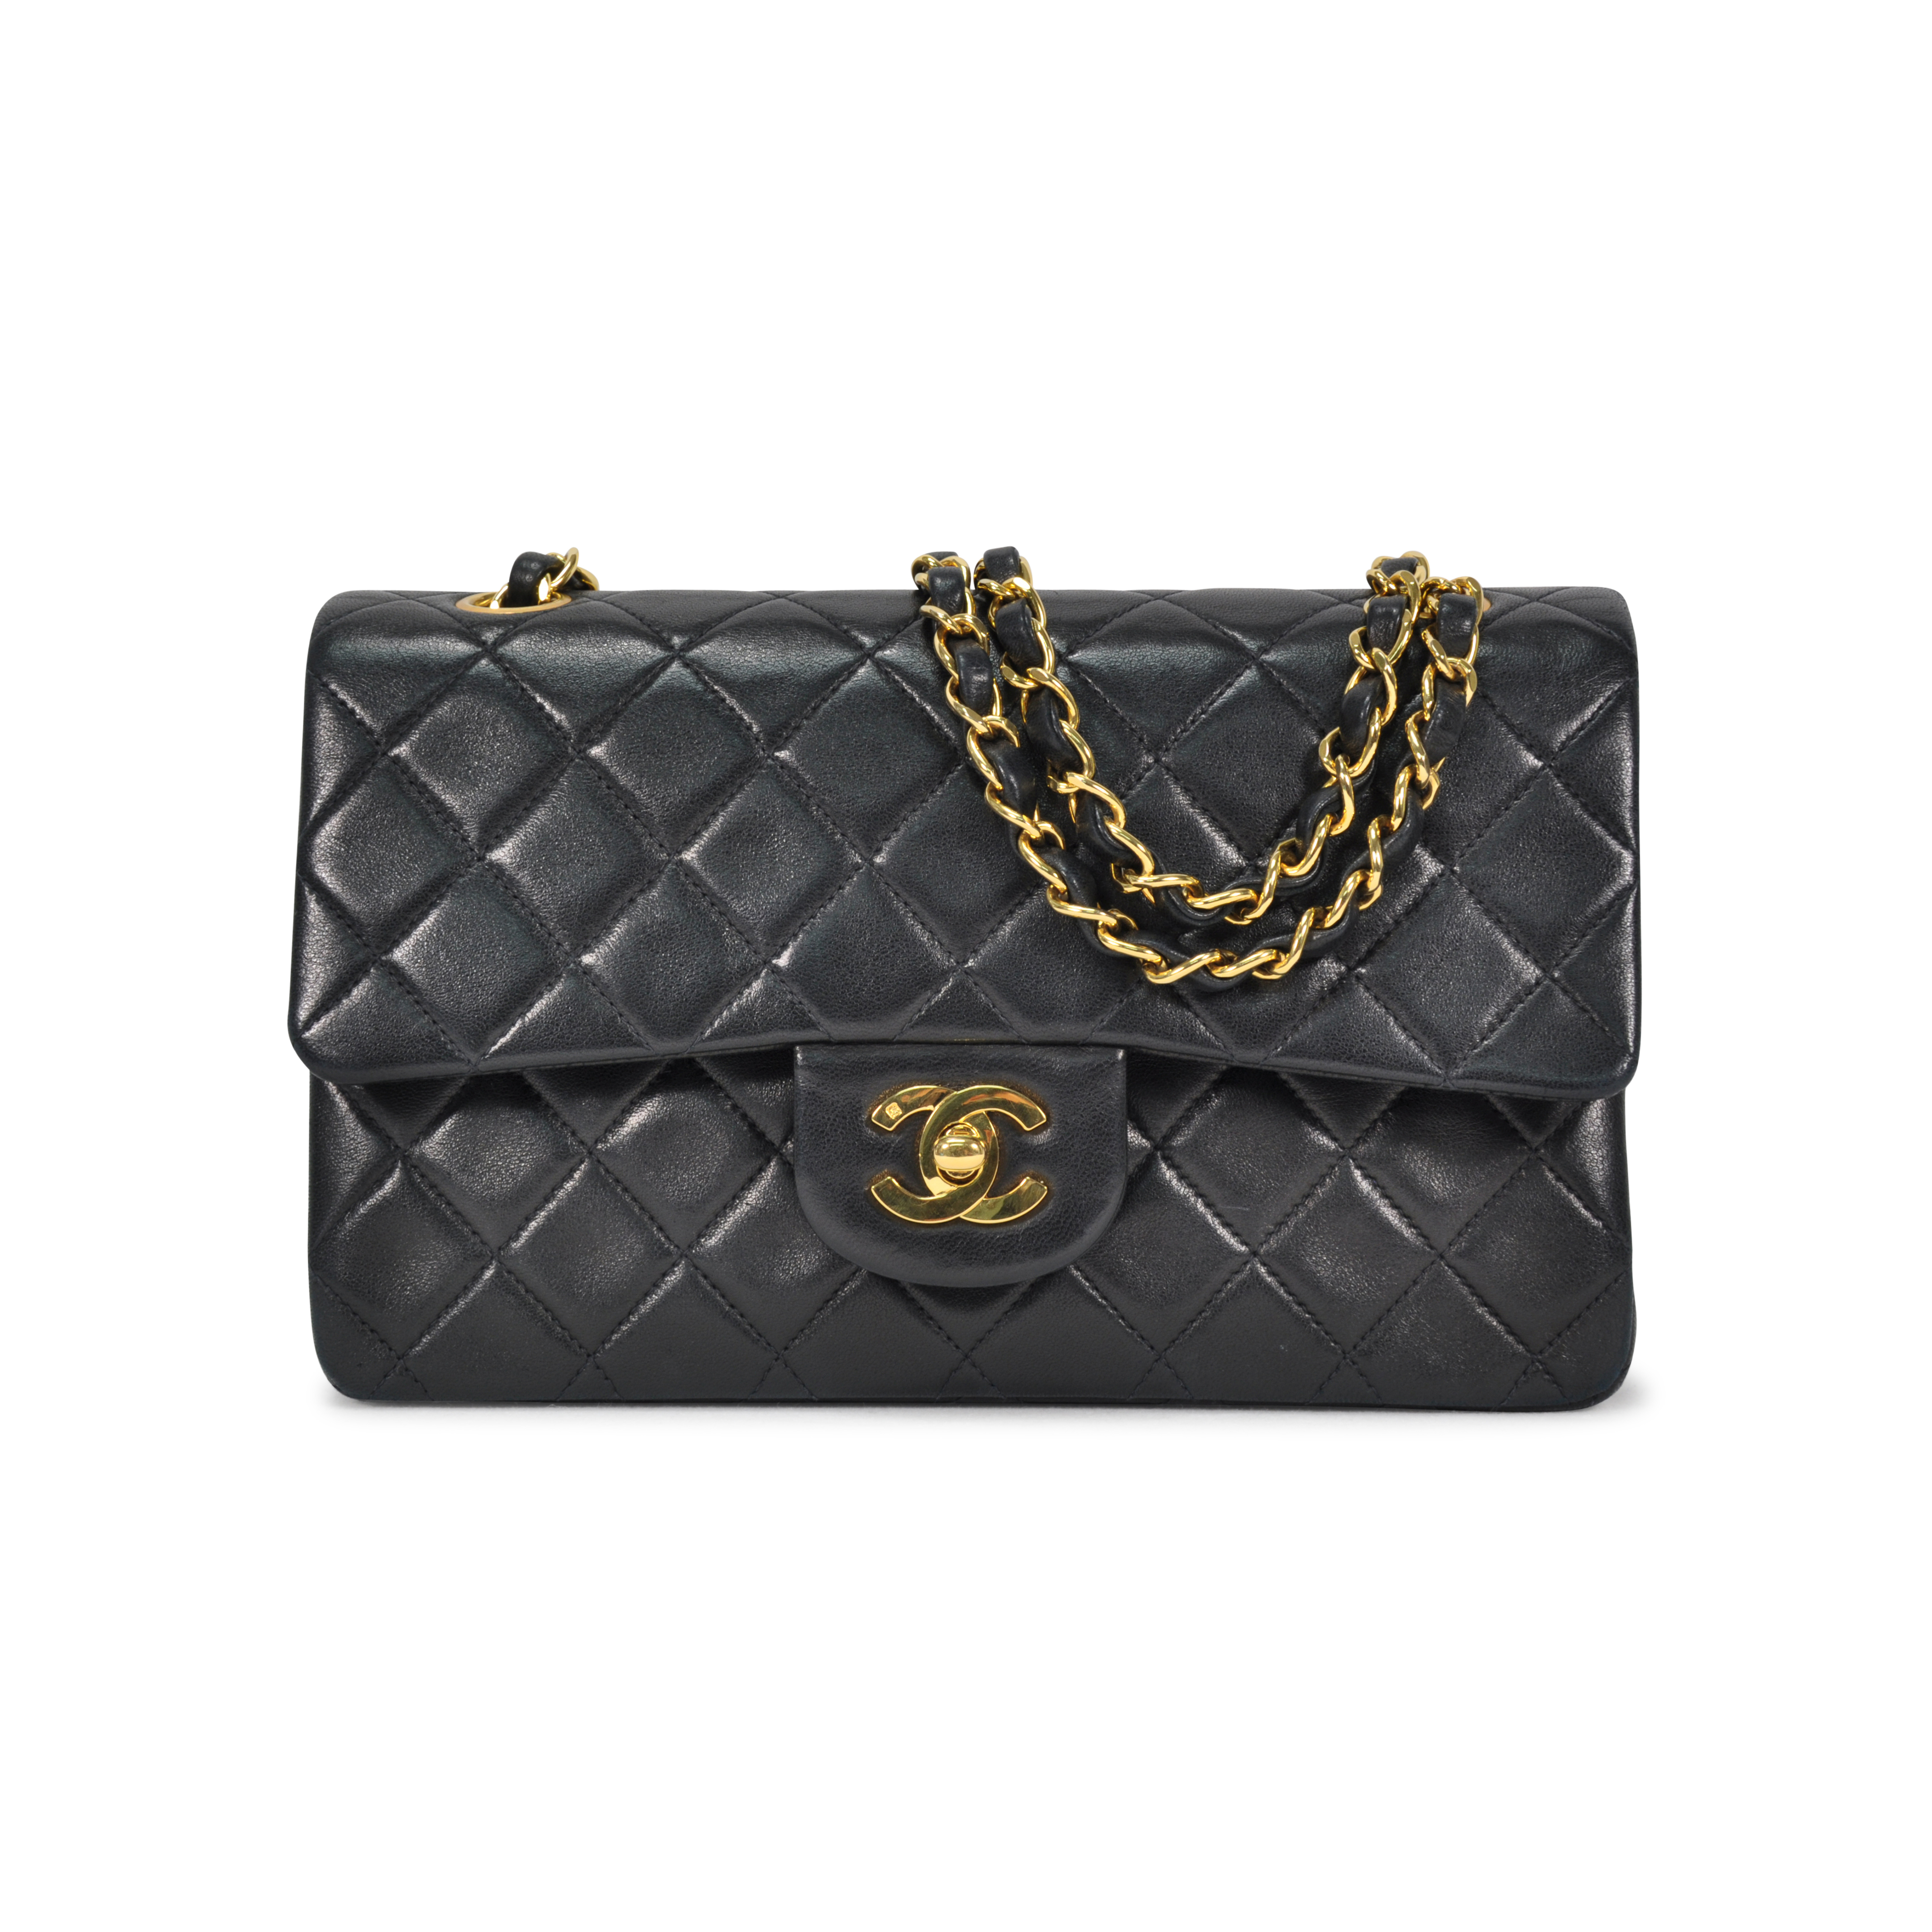 59db12bf2955 Authentic Vintage Chanel Small Classic Double Flap Bag (TFC-107-00022) |  THE FIFTH COLLECTION